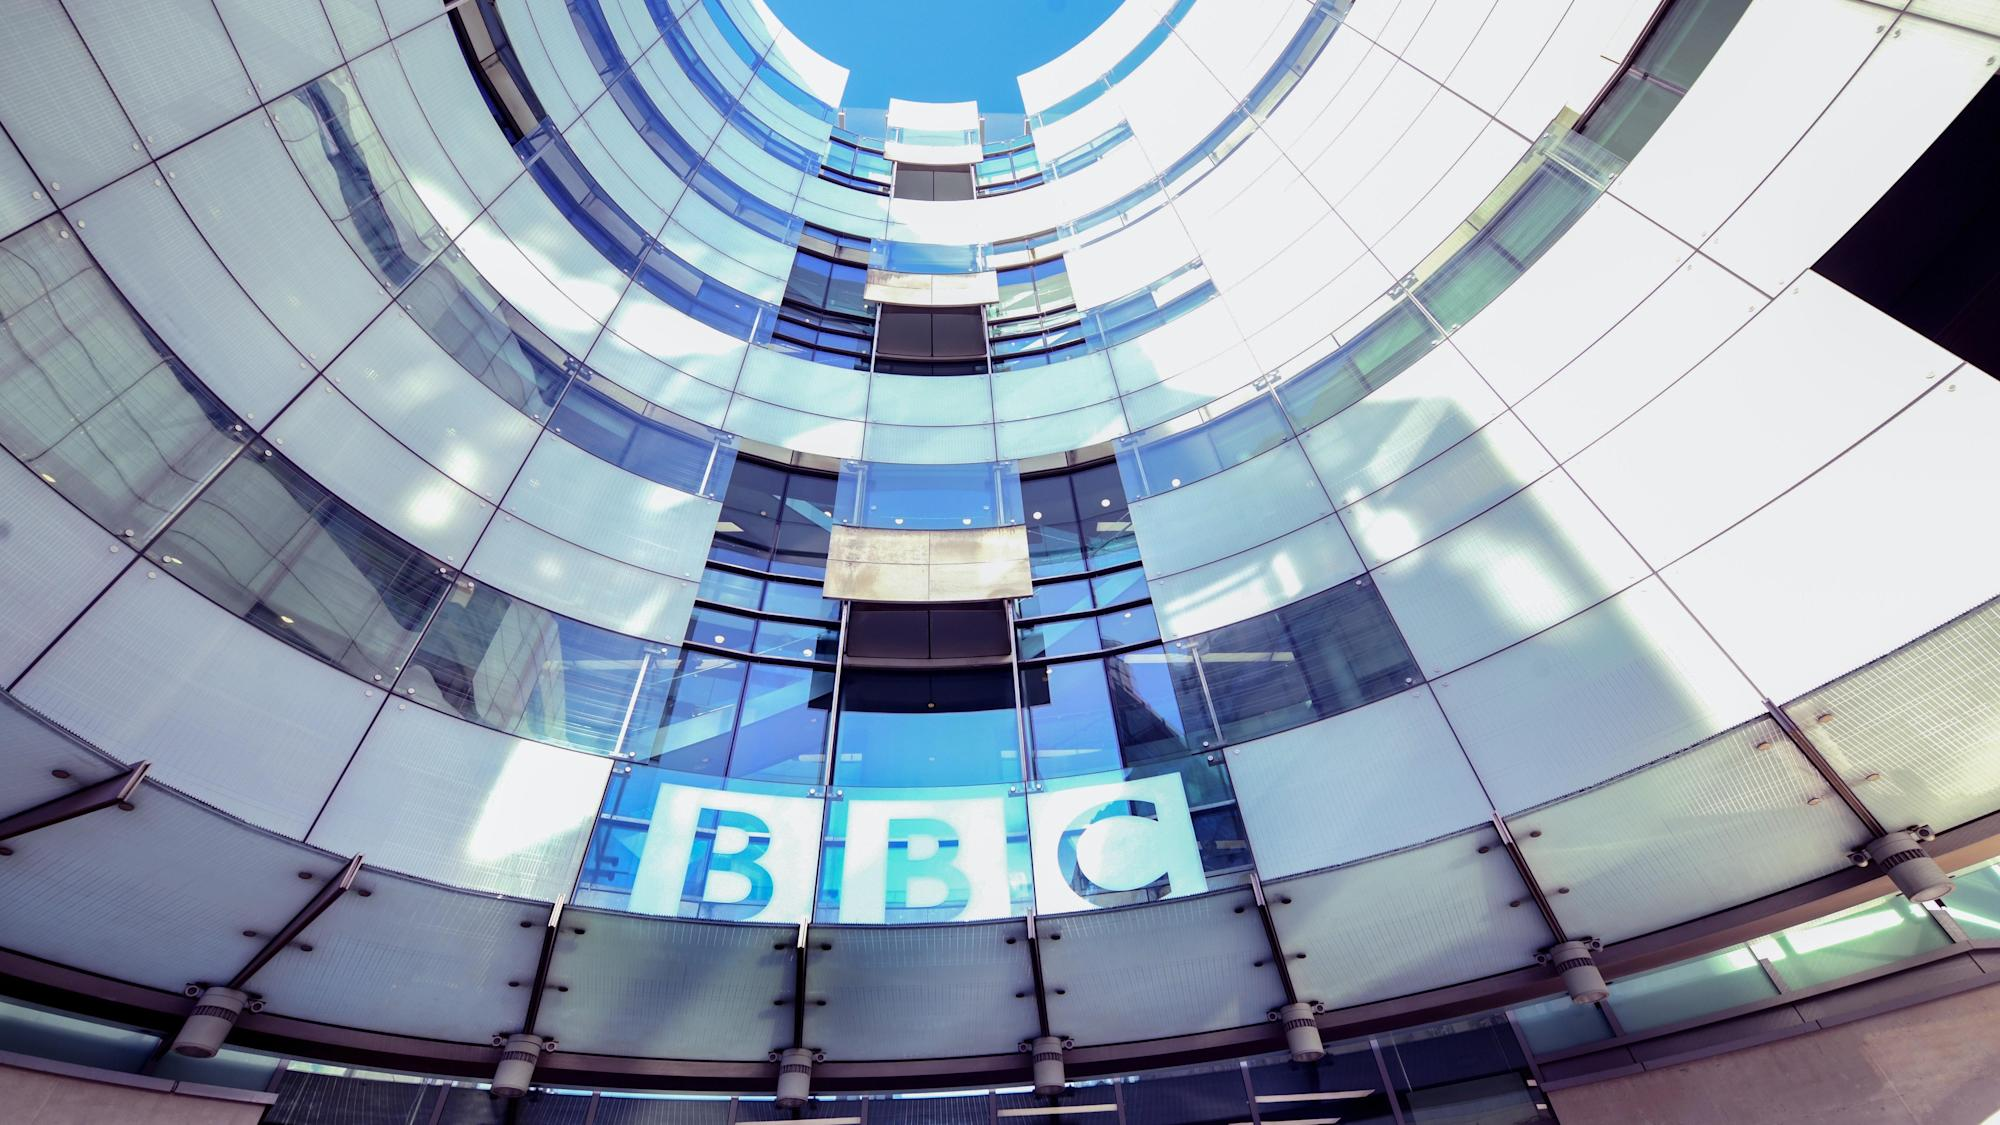 Investigation into pay at BBC was not robust, says gender equality charity